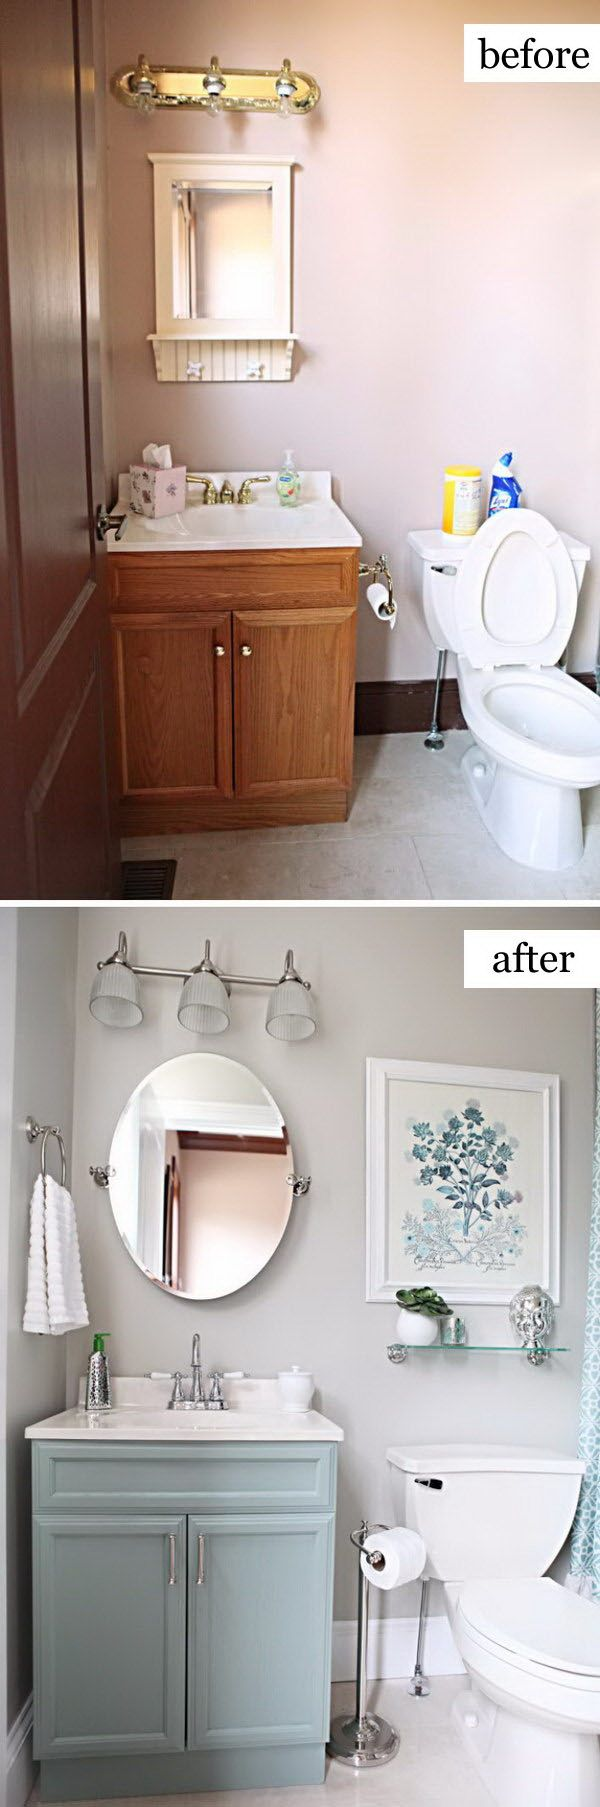 Bathroom Remodel List best 25+ bathroom remodeling ideas on pinterest | small bathroom